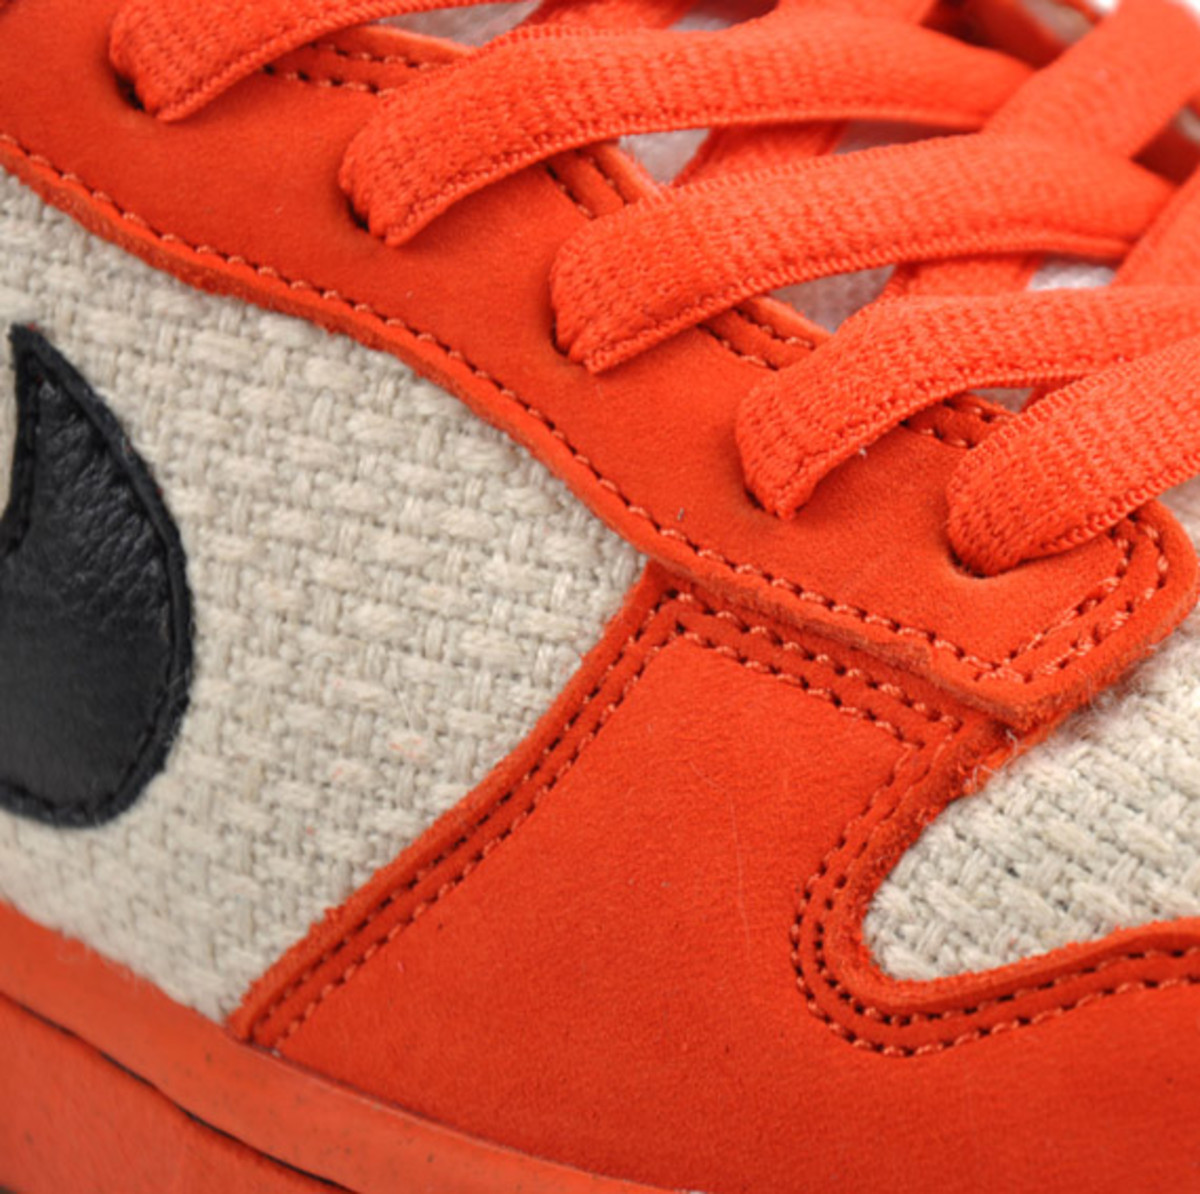 nike-sb-dunk-low-un-hemp-orange-1